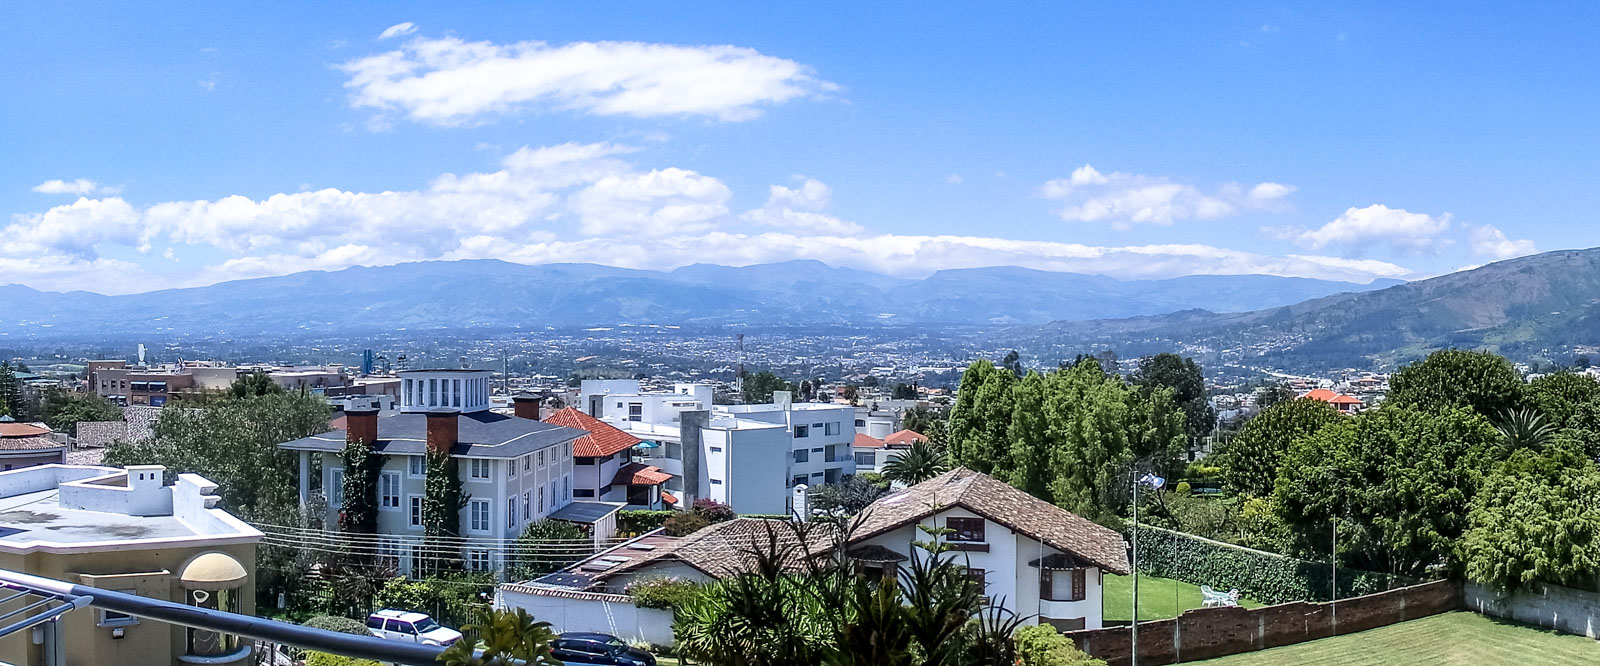 Why travelling Quito is like being with a woman. The view of Cumbaya on the other side of the valley to Quito, Mountains and lush green forest in the background